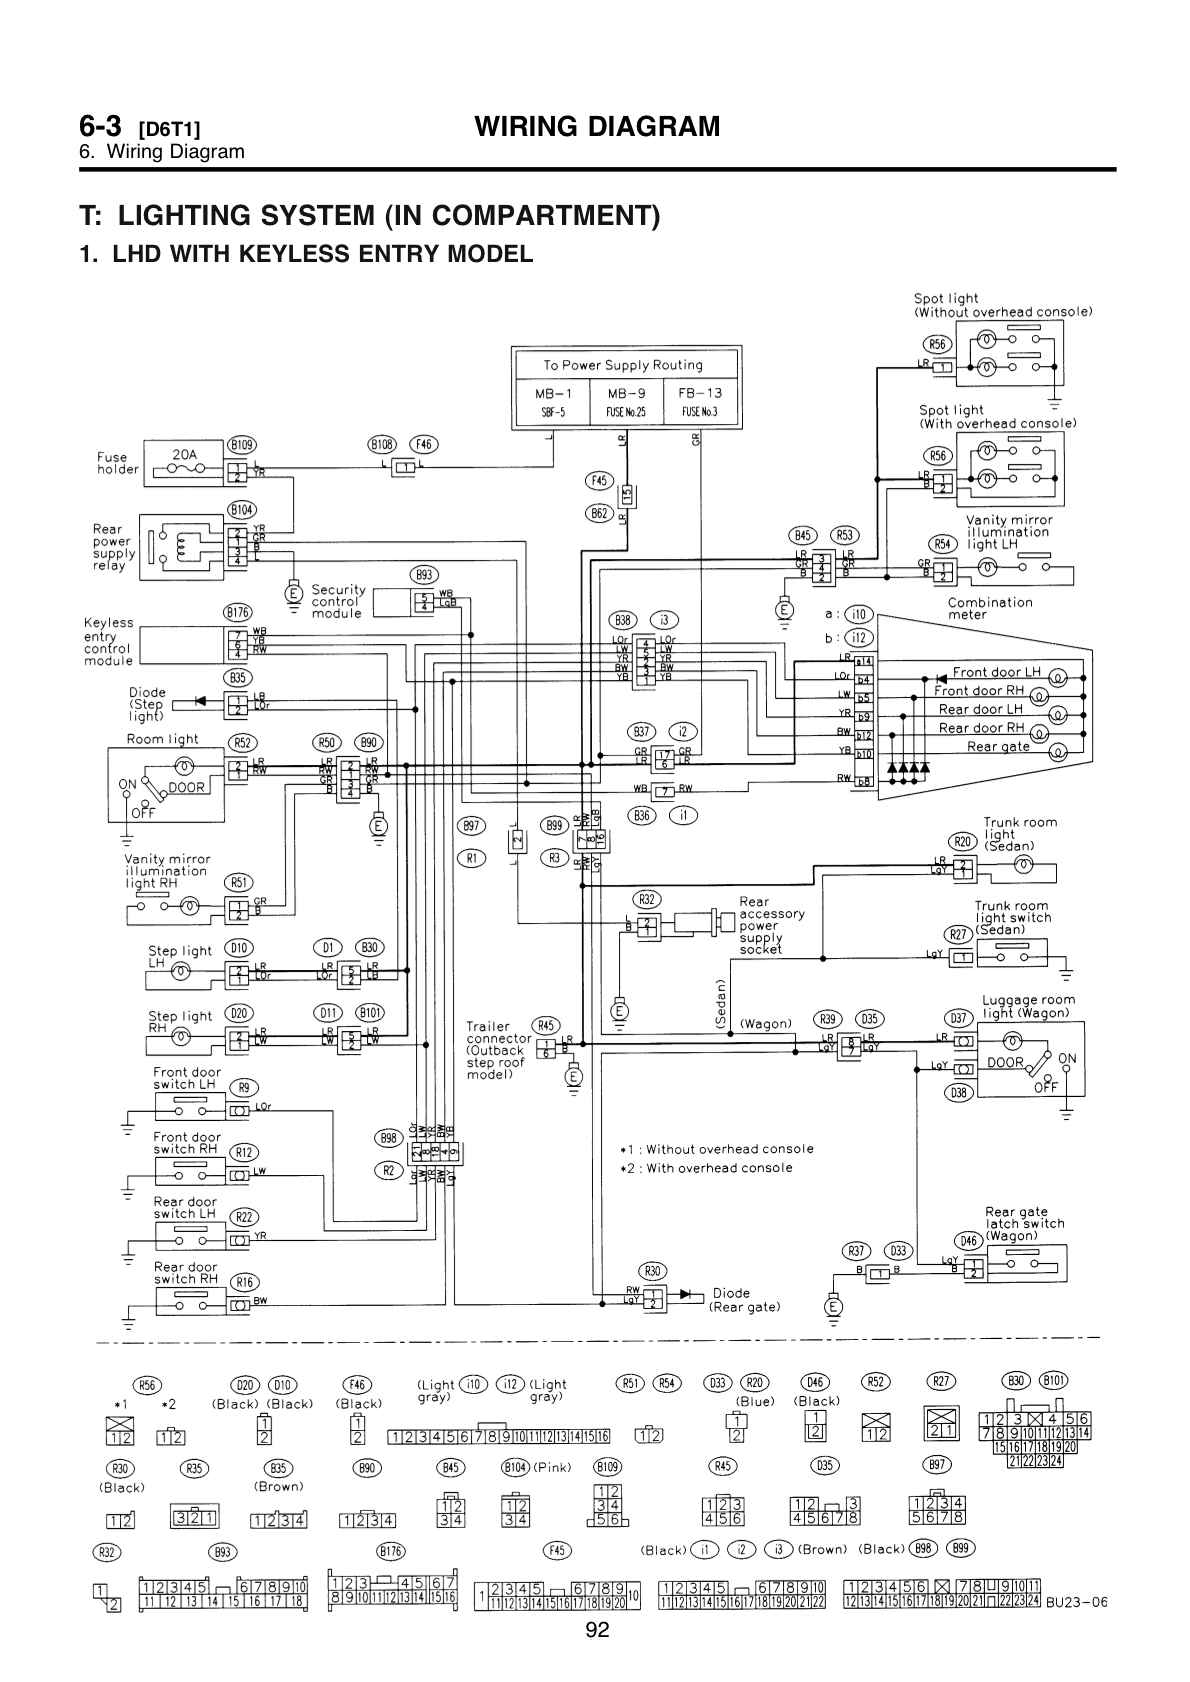 2000 Impreza Wiring Diagram 2000 Home Wiring Diagrams – Wrx Wiring Diagram